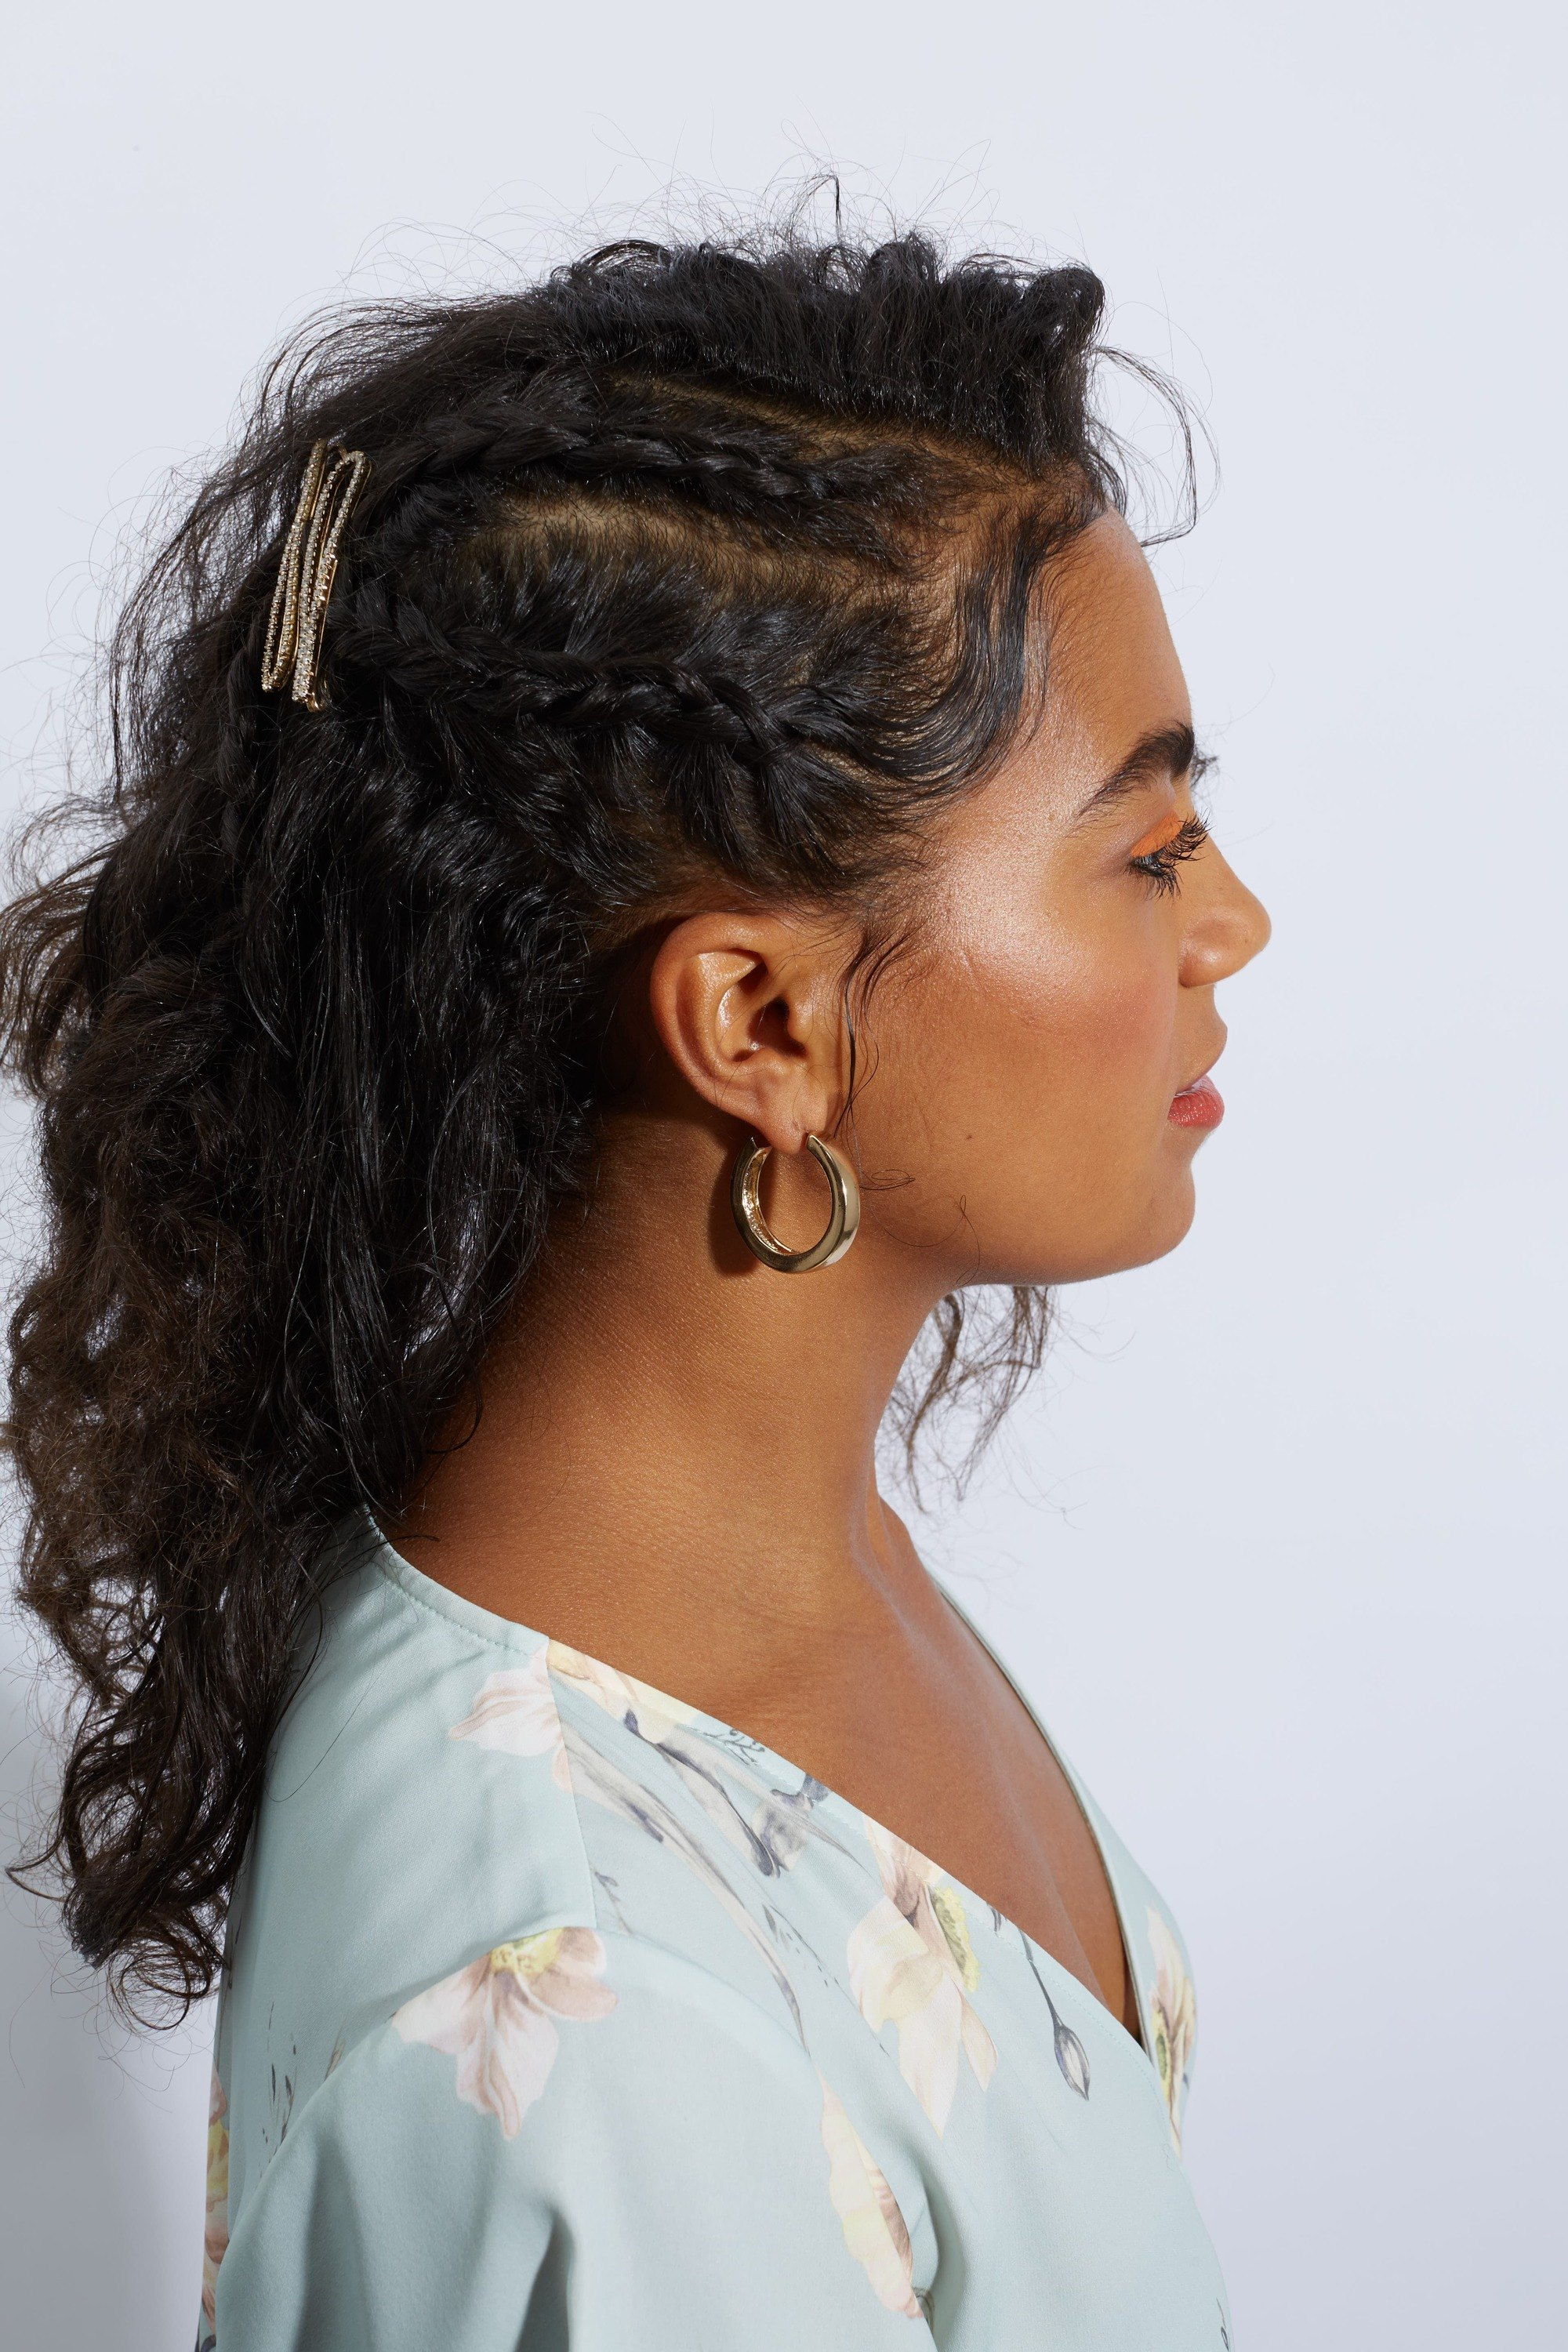 Bridesmaid hairstyles: Woman with loose naturally curly hair styled into half side braids with clips, wearing hoops and floral dress